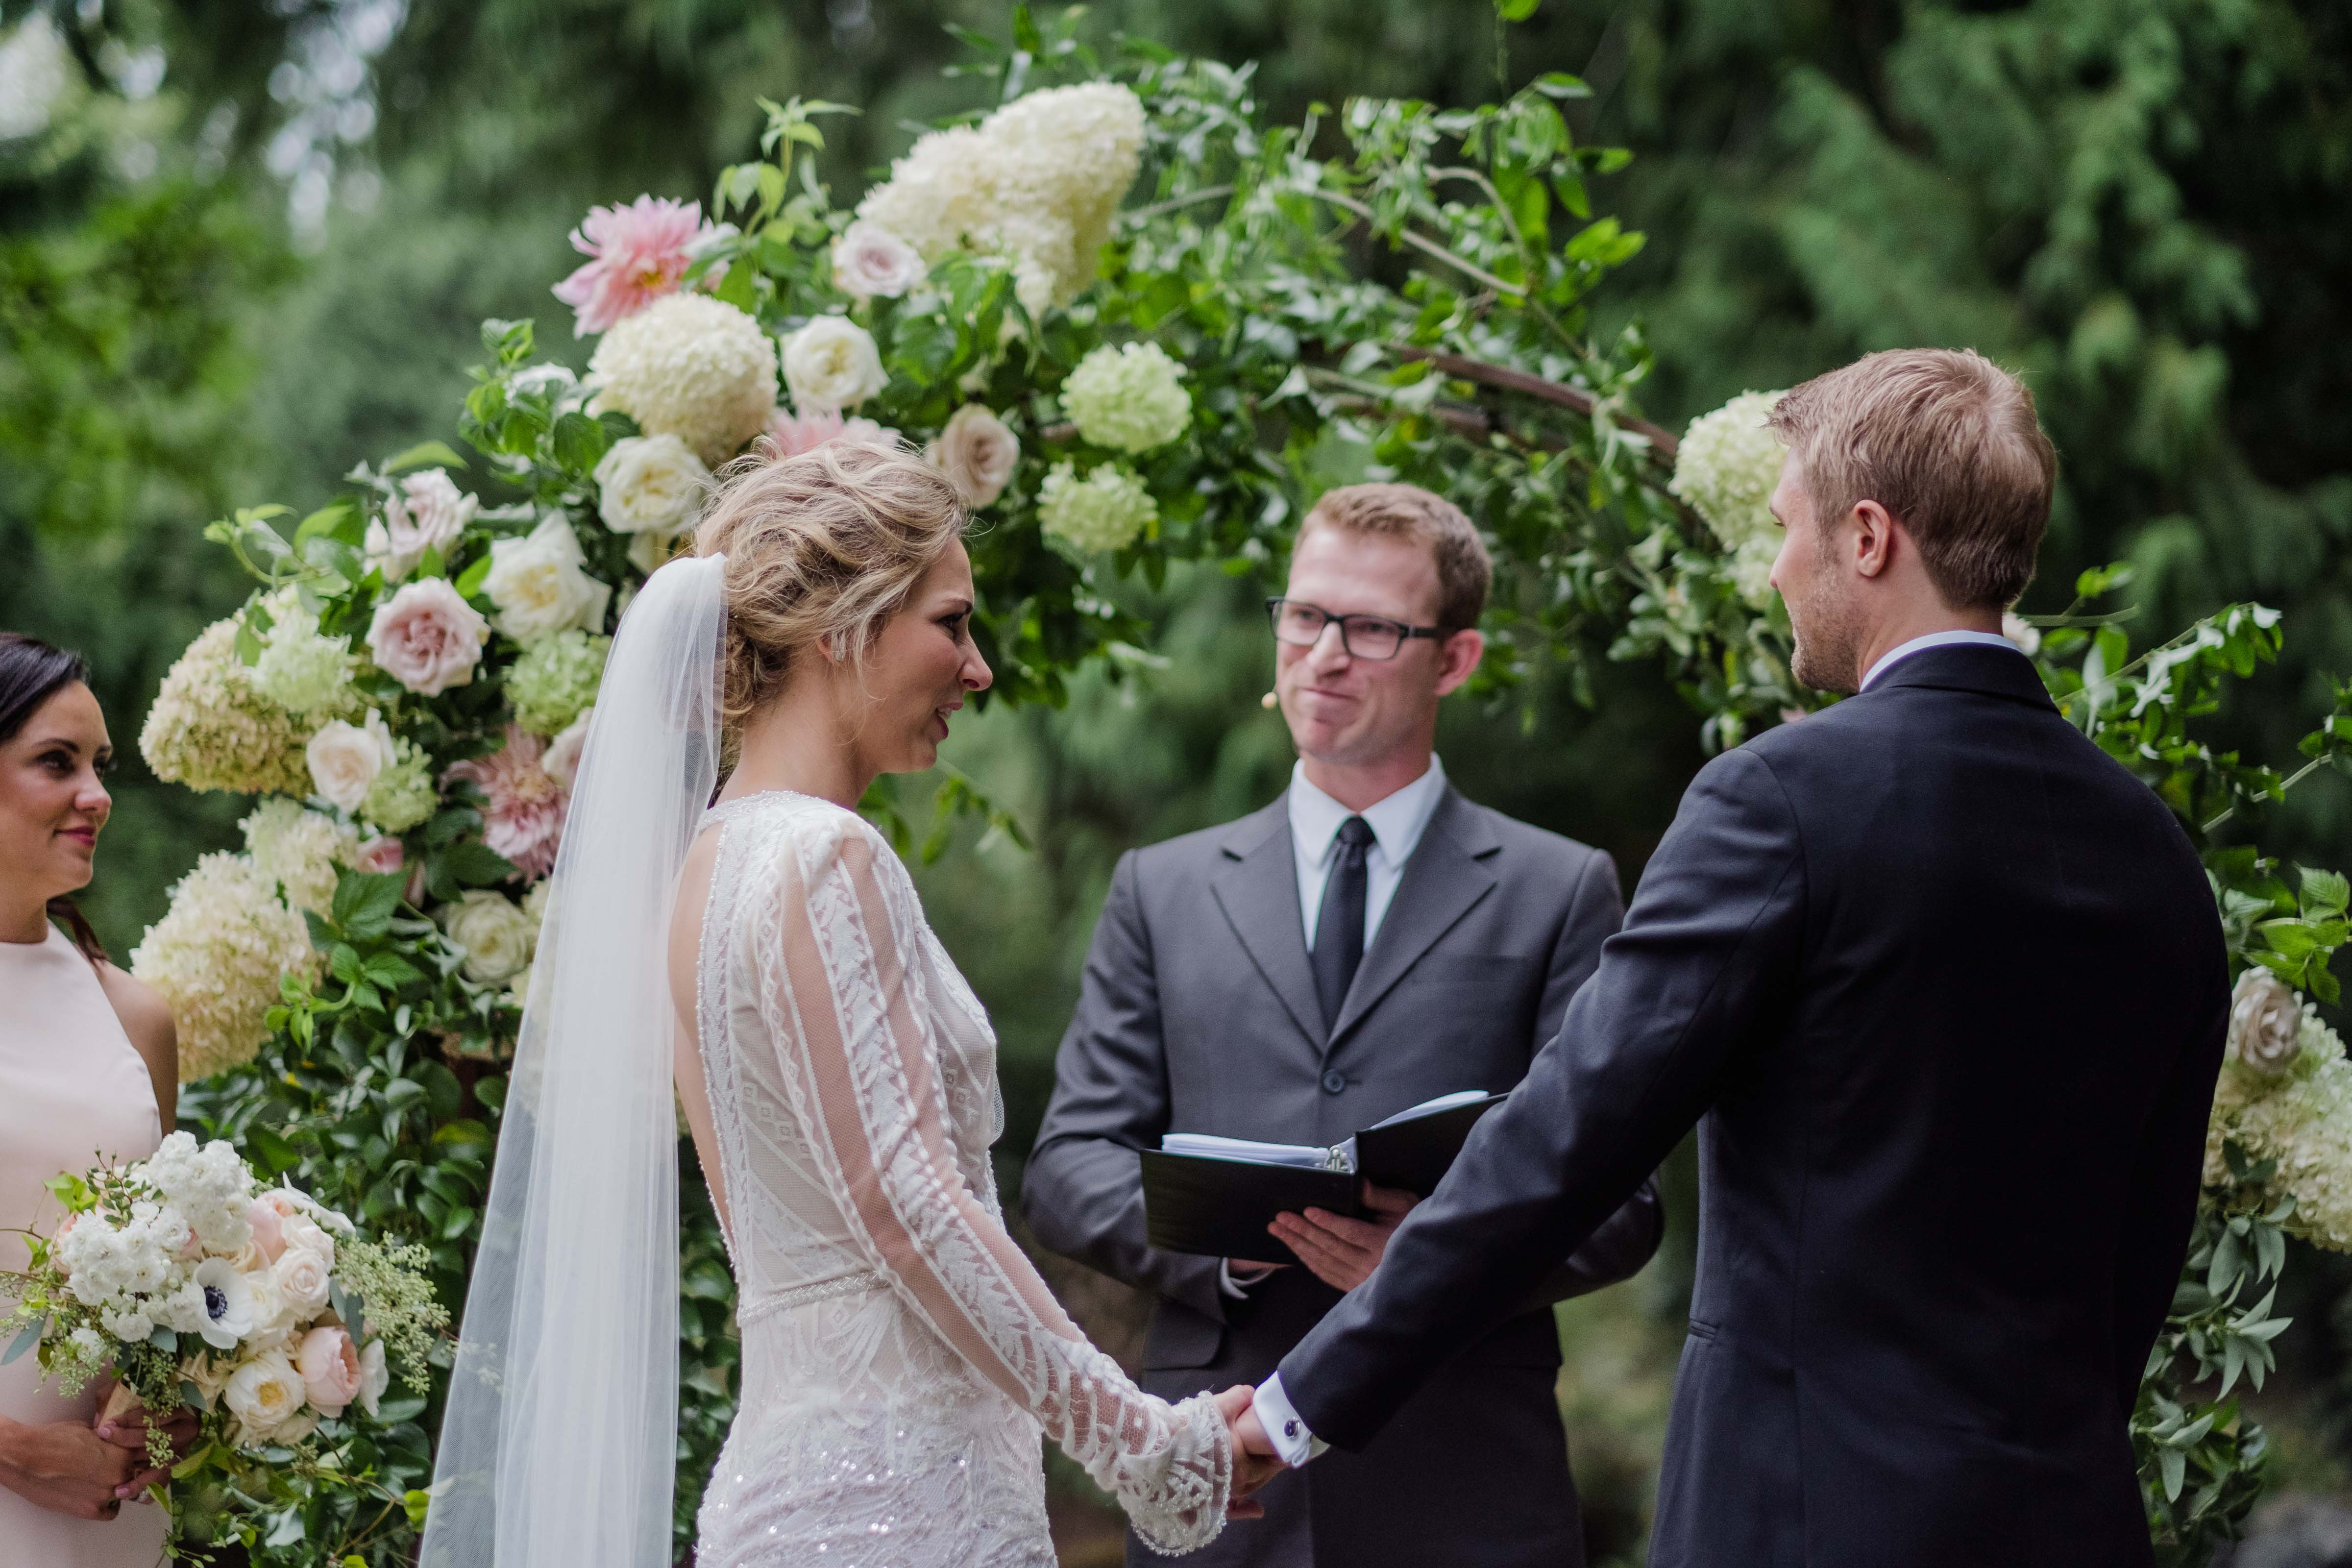 A wedding ceremony at Chateau Lill, designed by Flora Nova Design Seattle